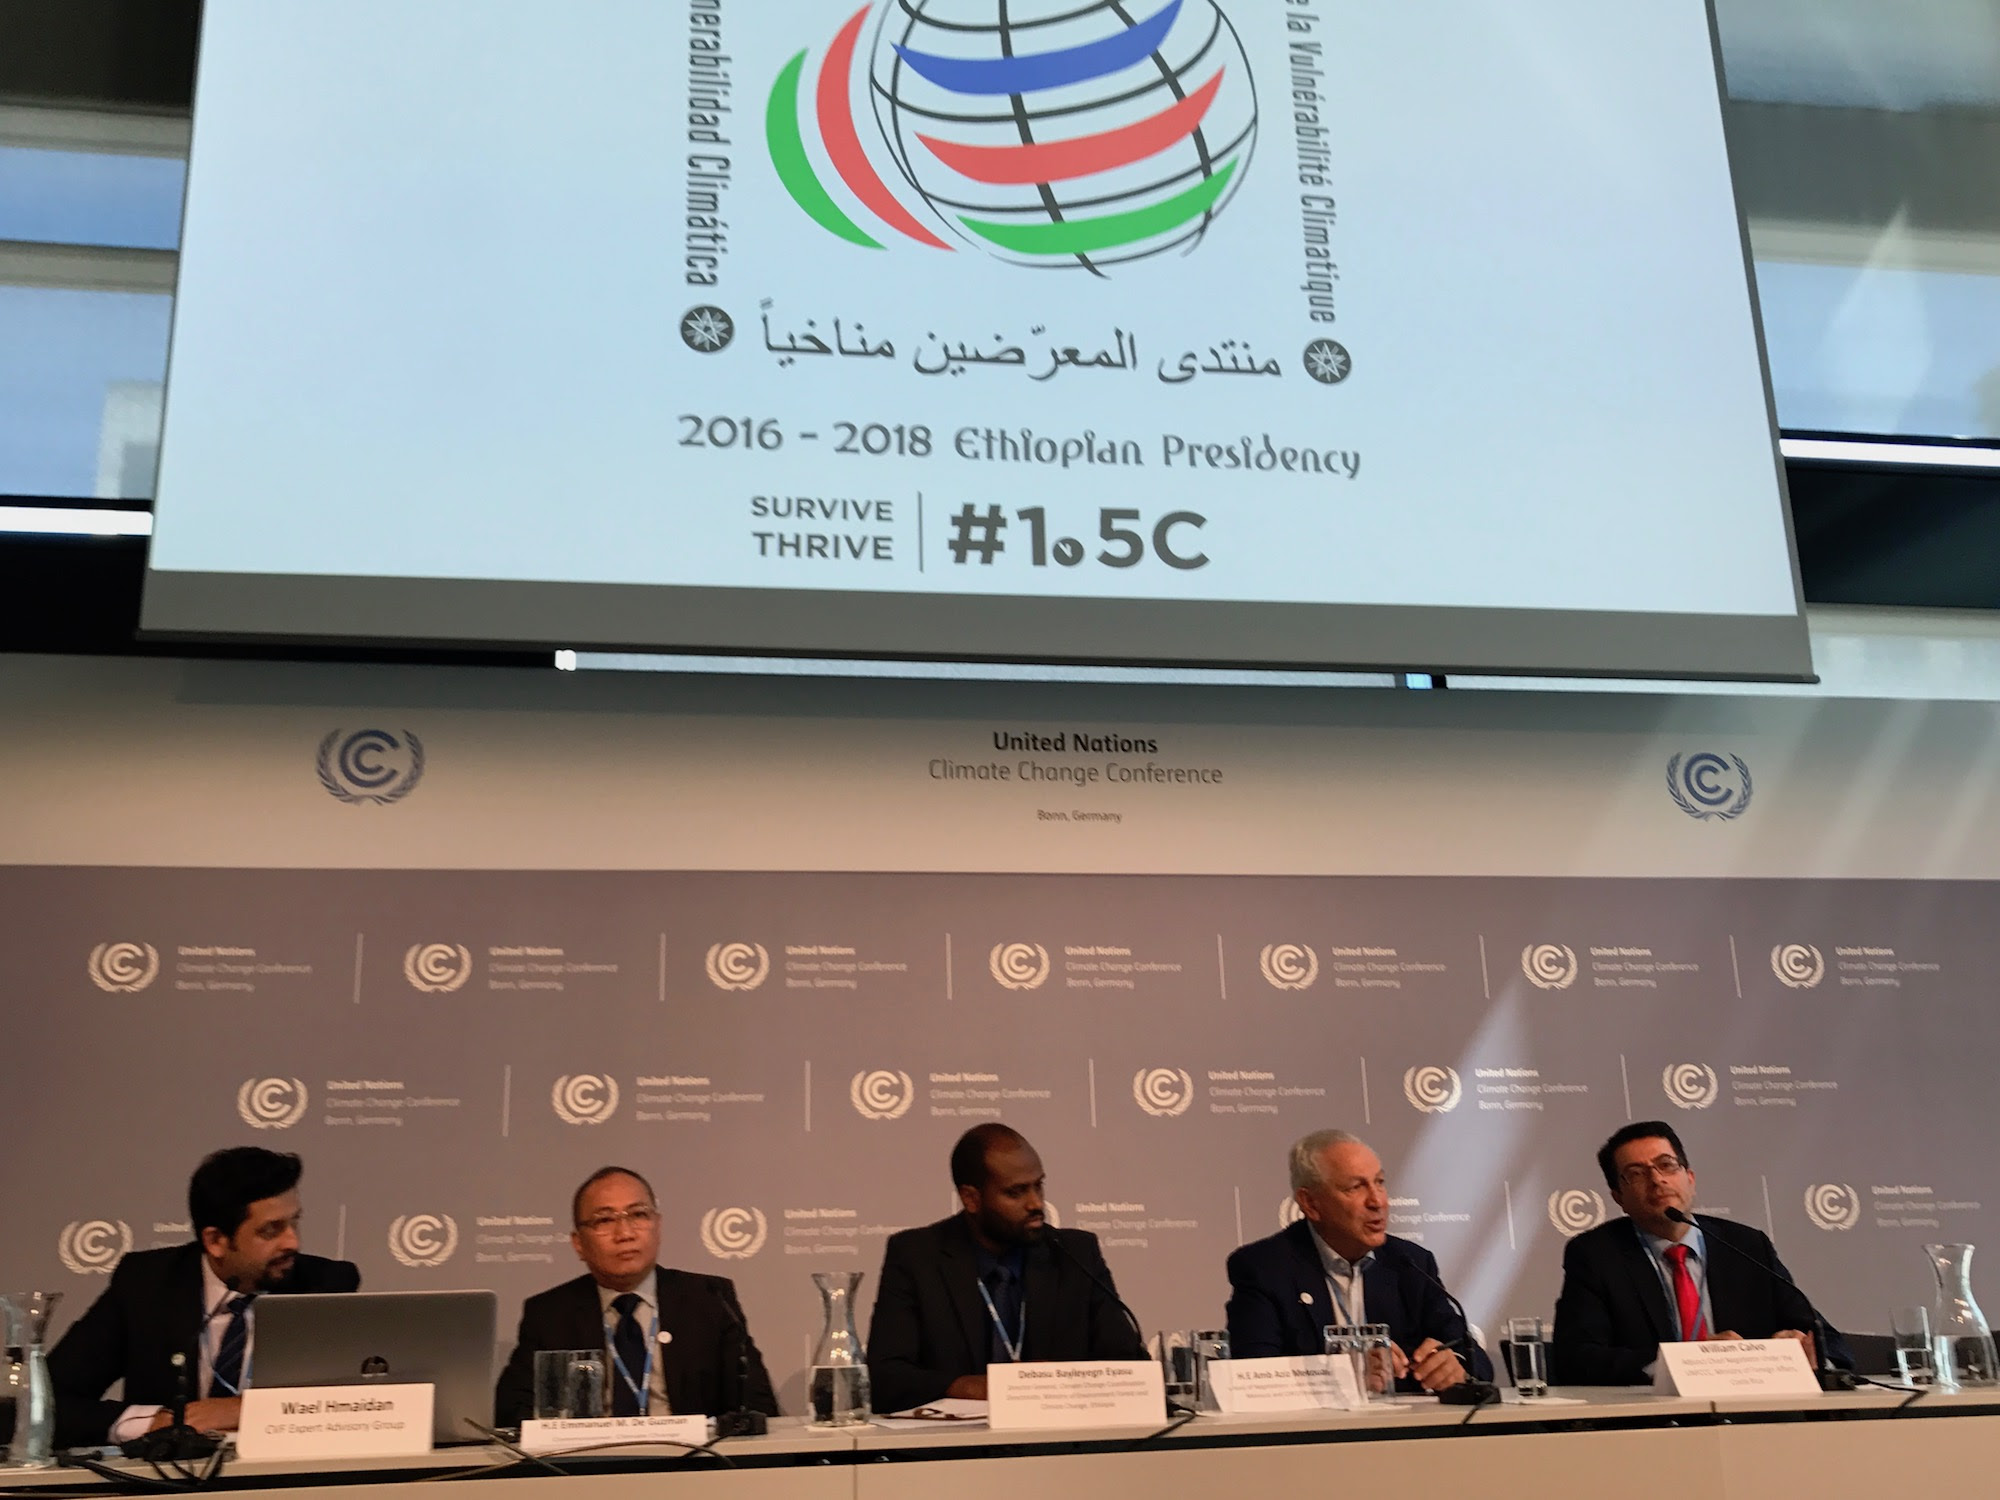 Climate Vulnerable Forum – Drive for greater climate action - United Nations Climate Change Conference at Bonn, Germany 17 May 2017